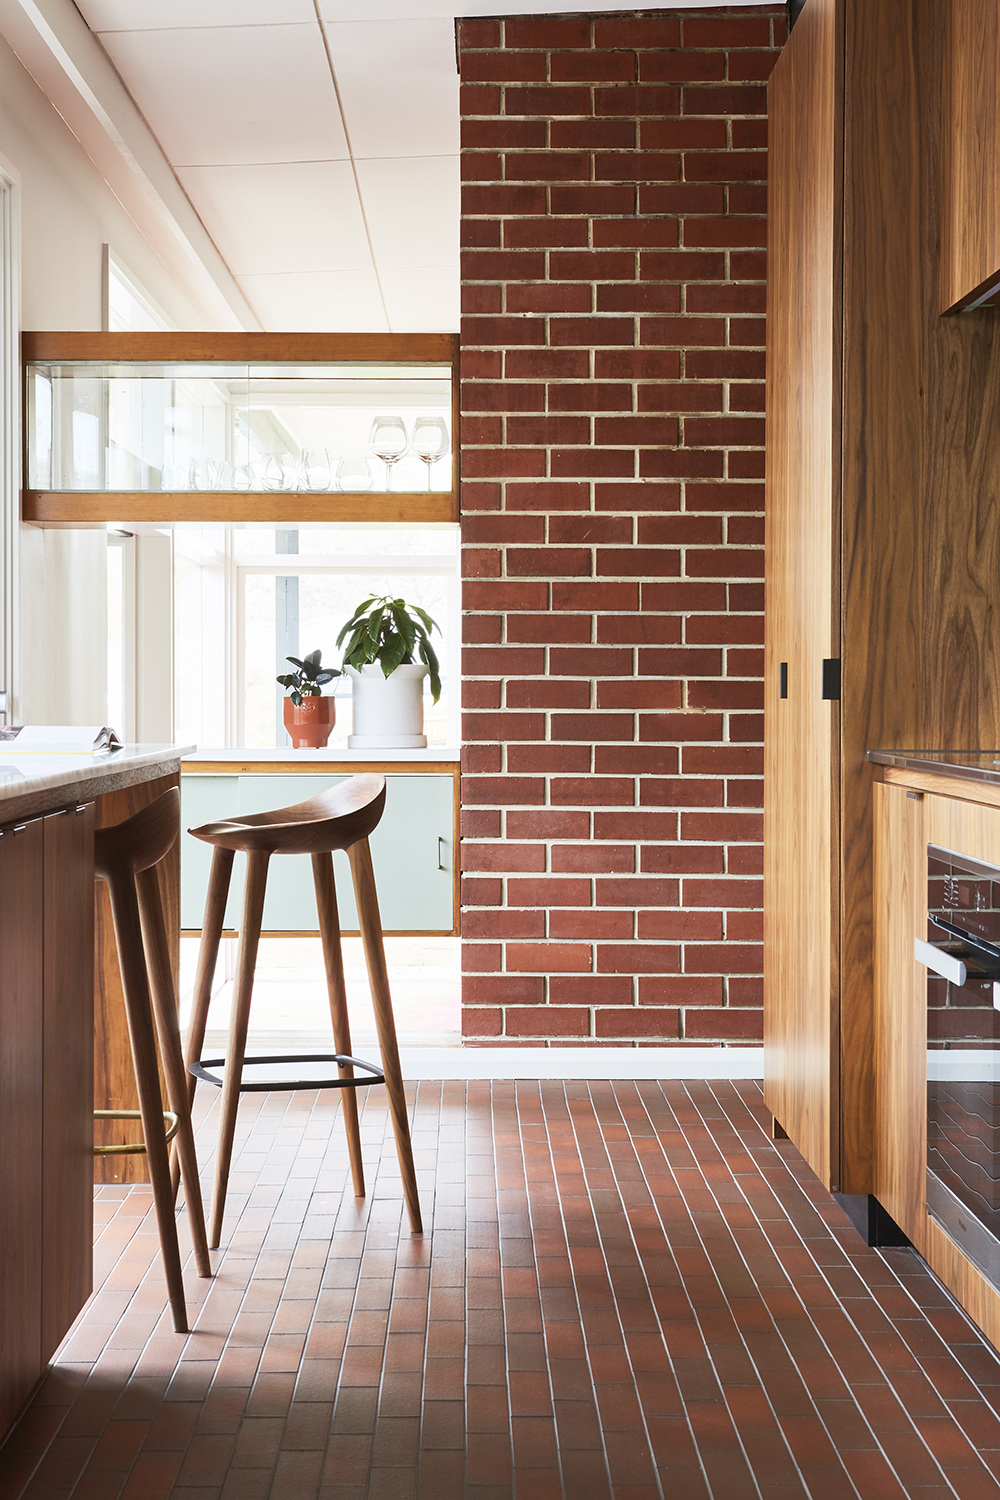 The Frankston House, Restored By Mrtn Architects In The Spirit Of The Original 1963 Design By Jack Clark.